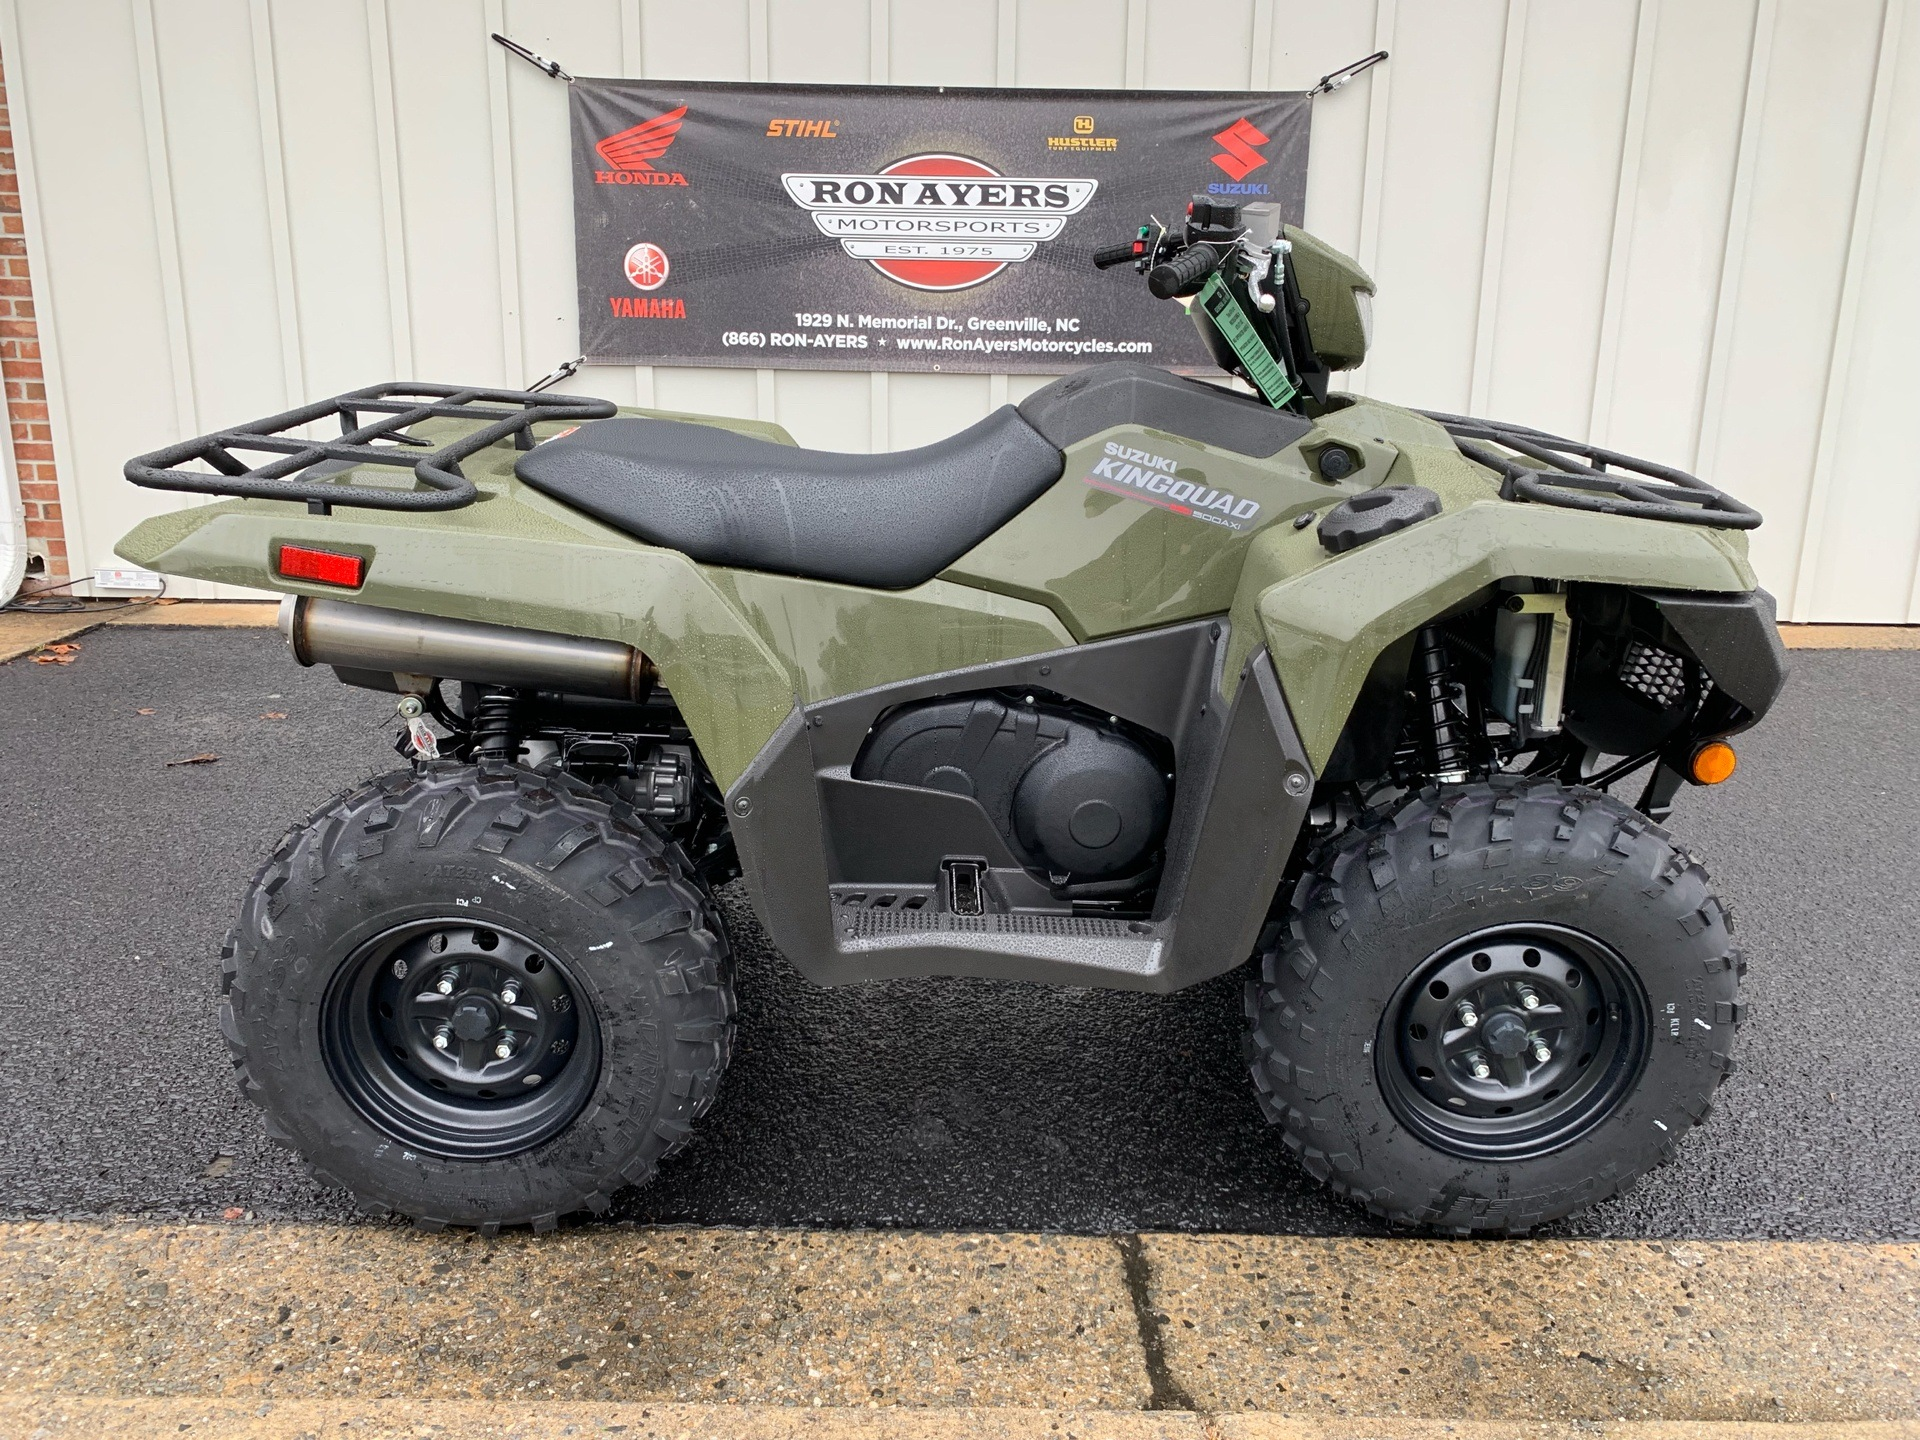 2019 Suzuki KingQuad 500AXi in Greenville, North Carolina - Photo 1